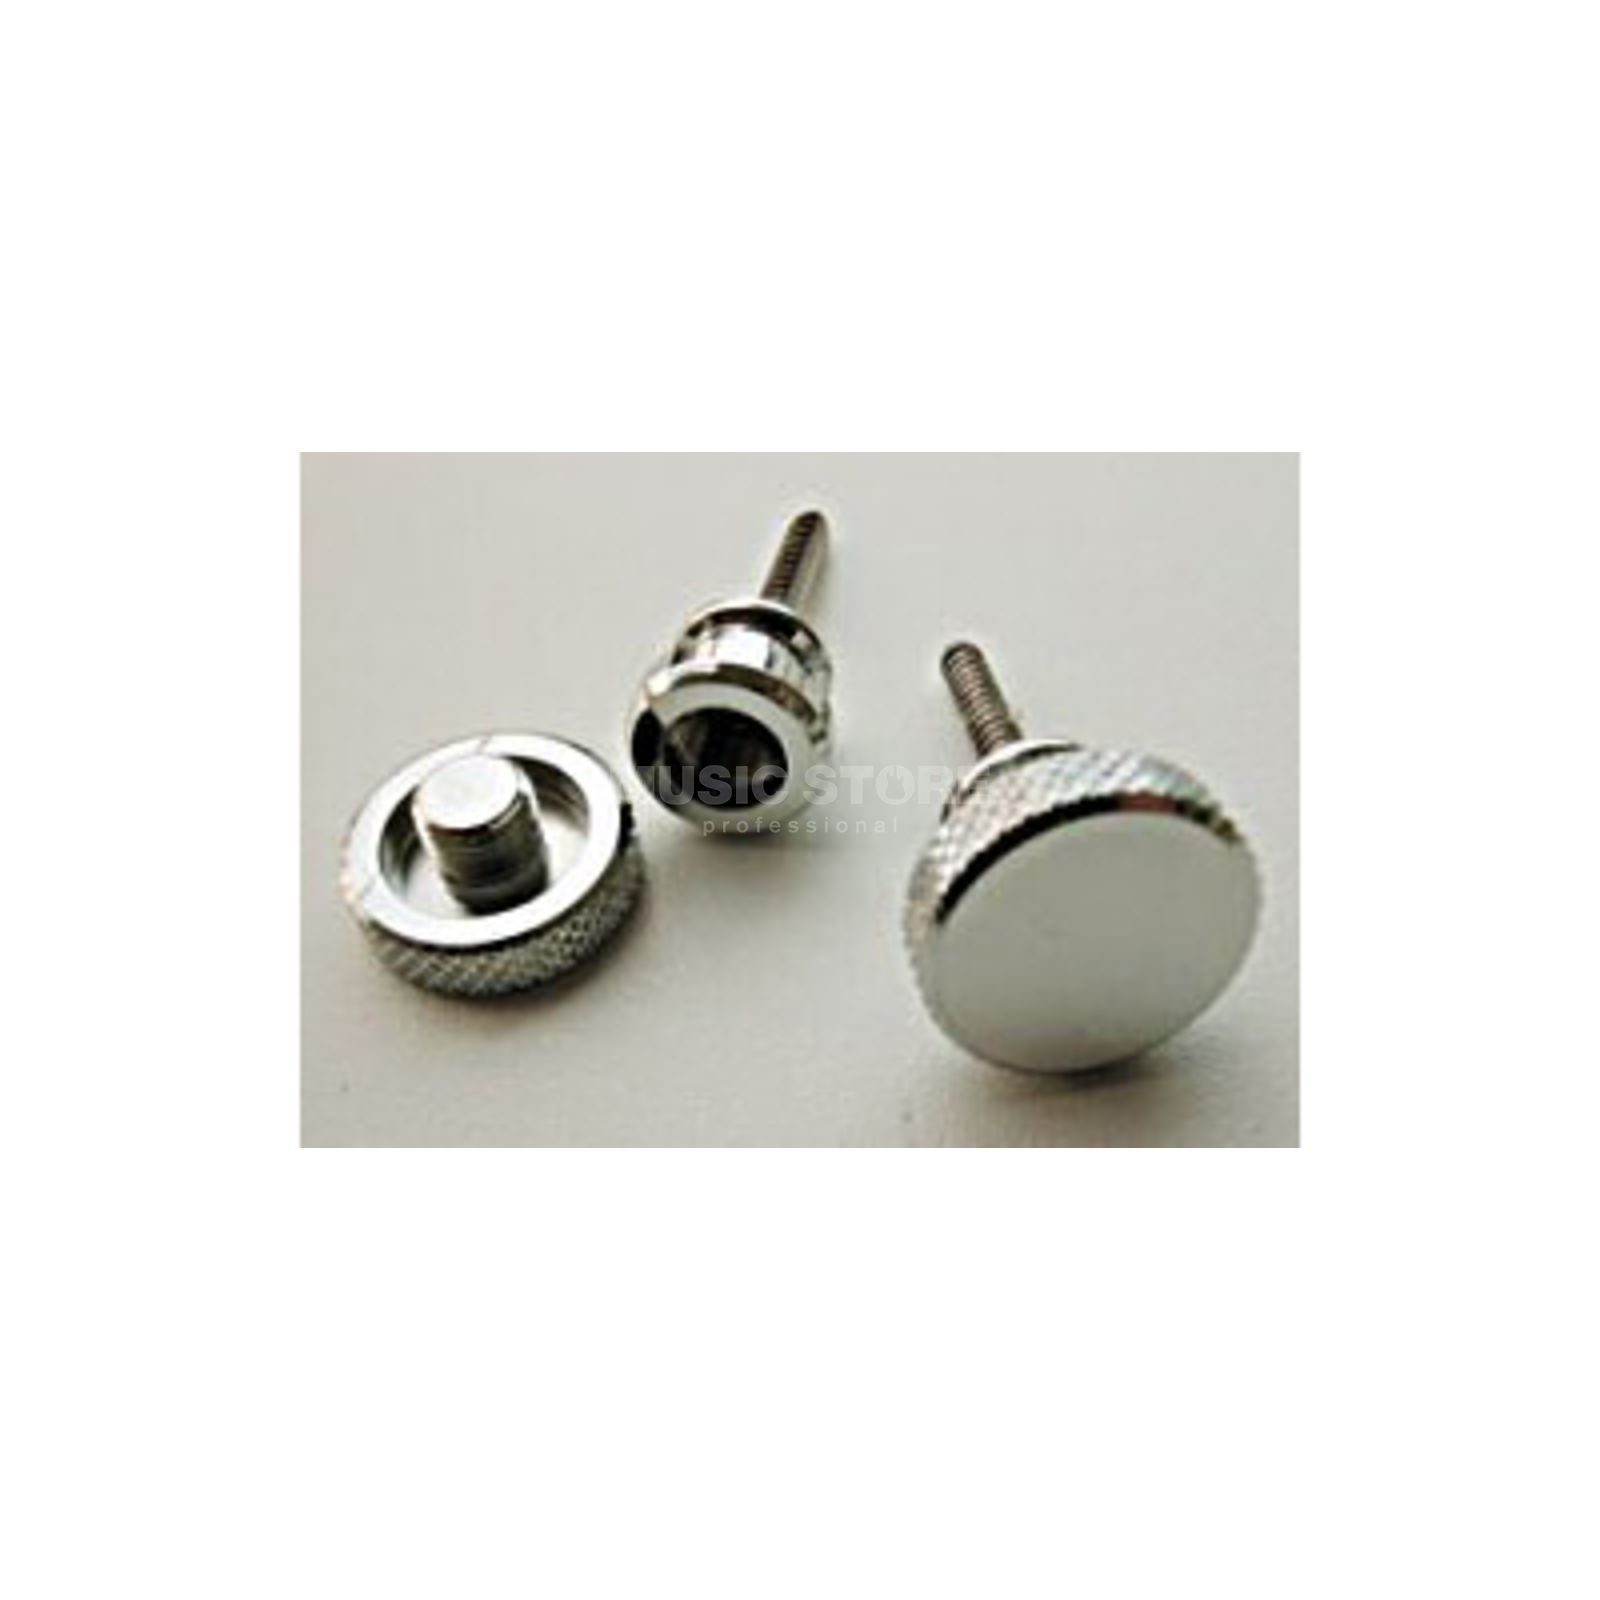 Kluson Multi Lock Nickel Gurtpin Set Produktbillede